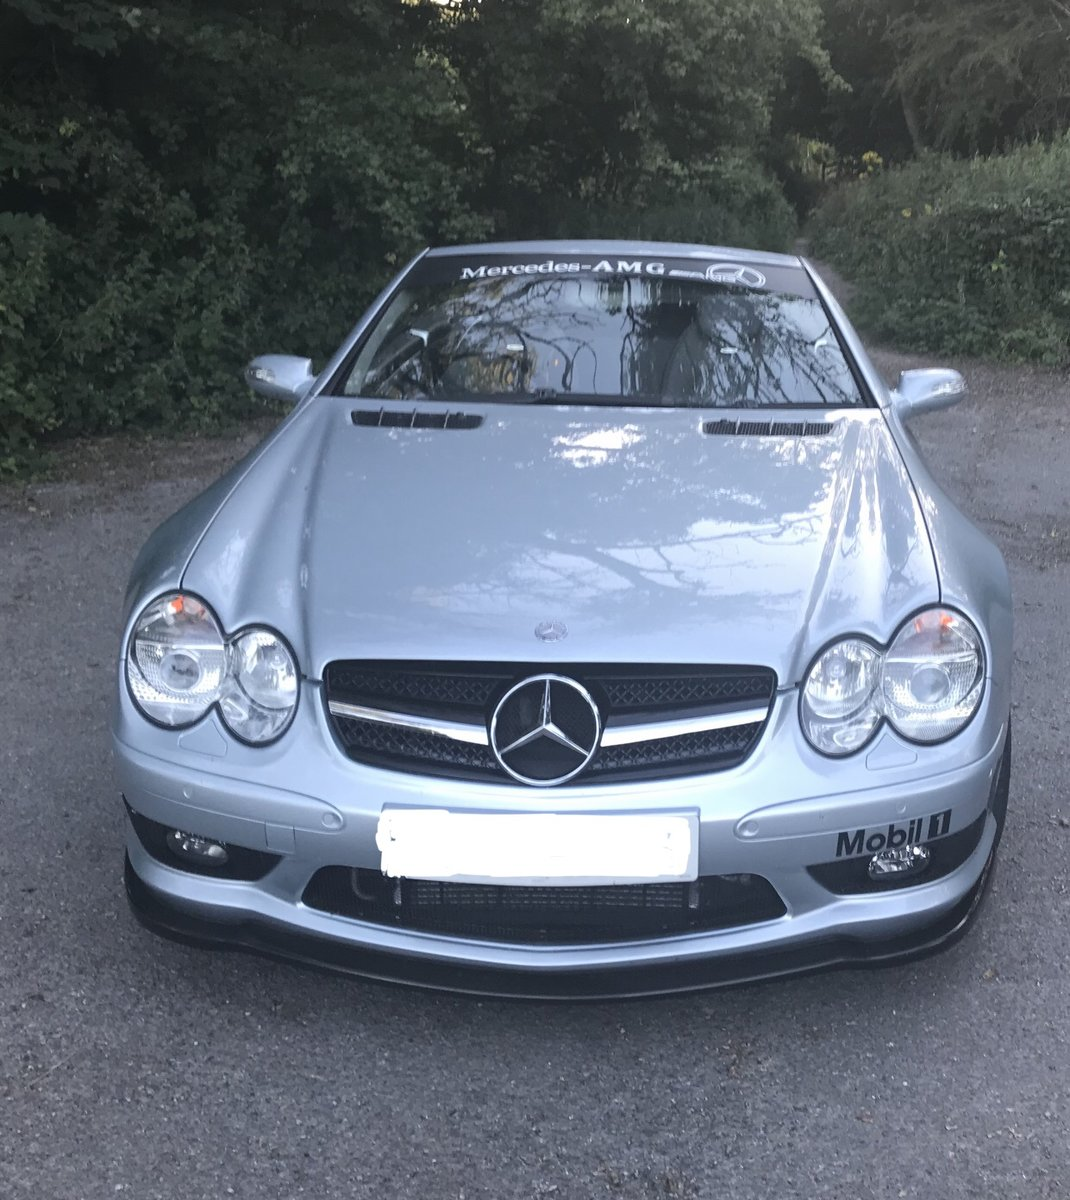 2004 550 bhp Mercedes Supercharged V8 SL55 AMG For Sale (picture 3 of 6)